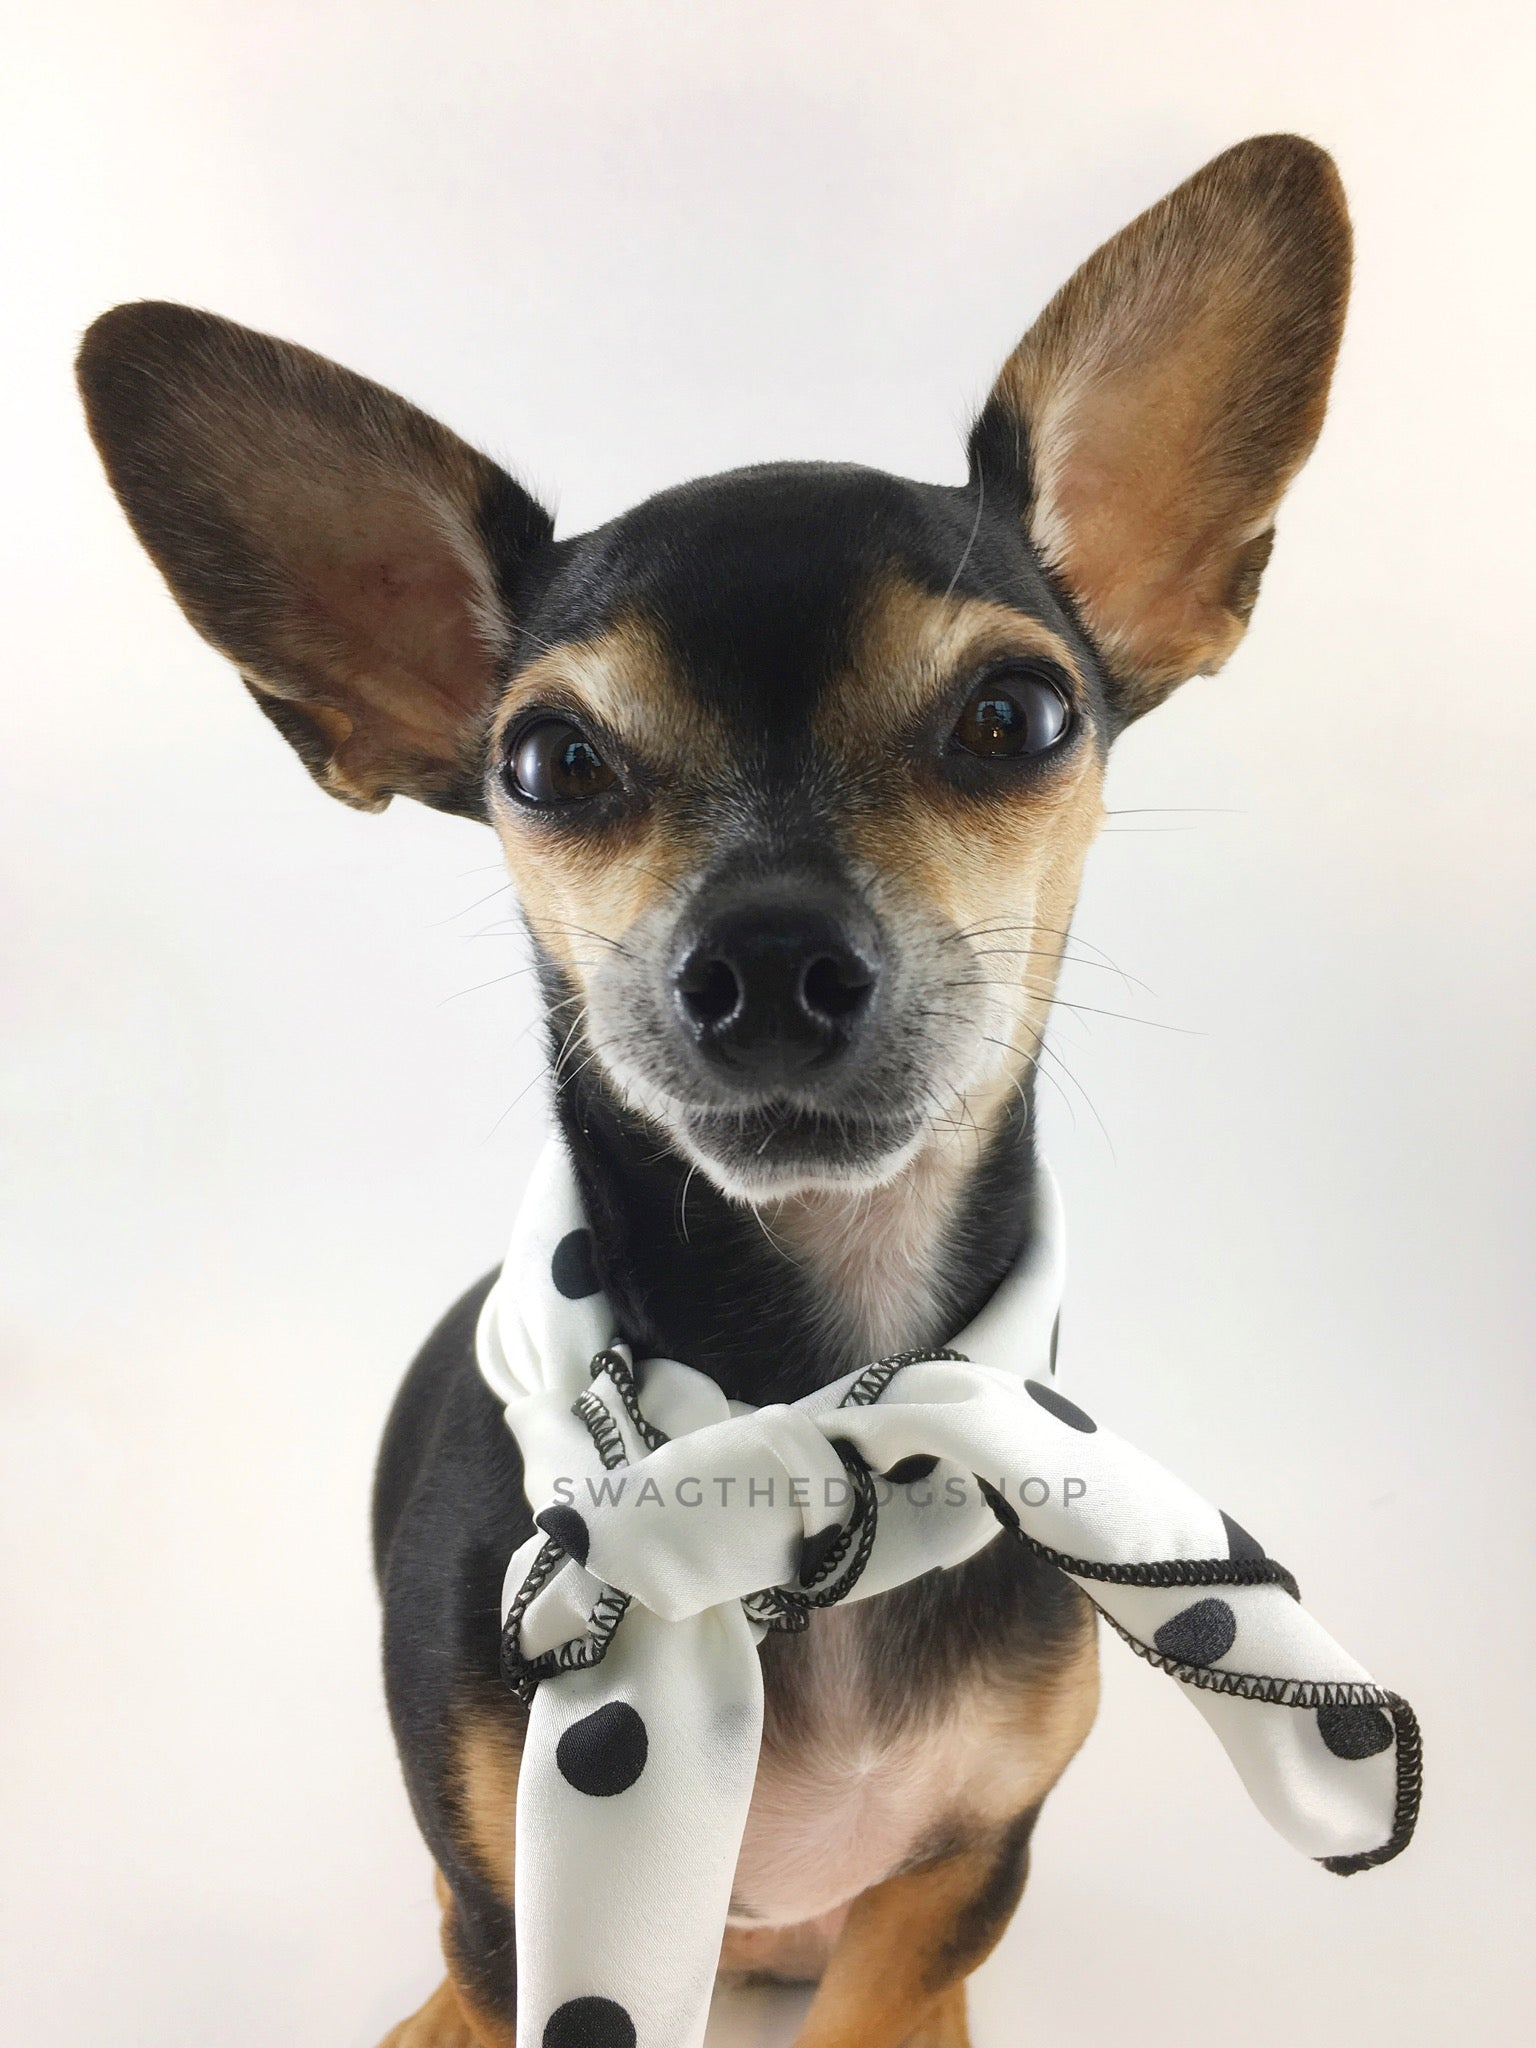 Polka Dot White Swagdana Scarf - Bust of Cute Chihuahua Wearing Swagdana Scarf as Neck Scarf. Dog Bandana. Dog Scarf.